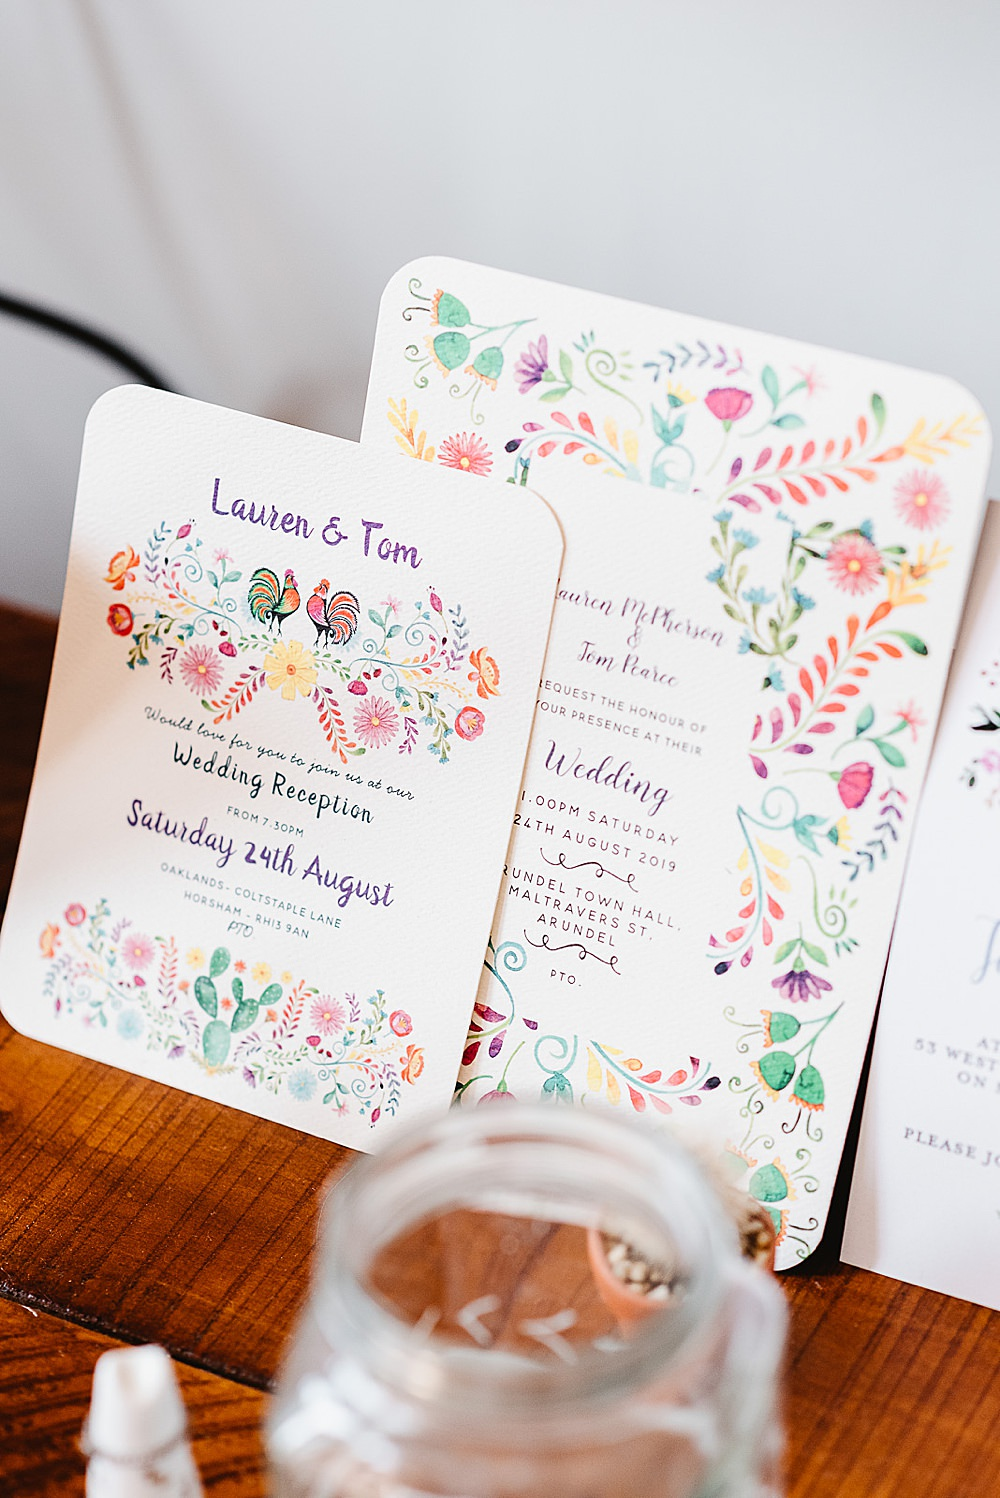 Floral Colourful Stationery Invite Invitations DIY Tipi Wedding Fiona Kelly Photography